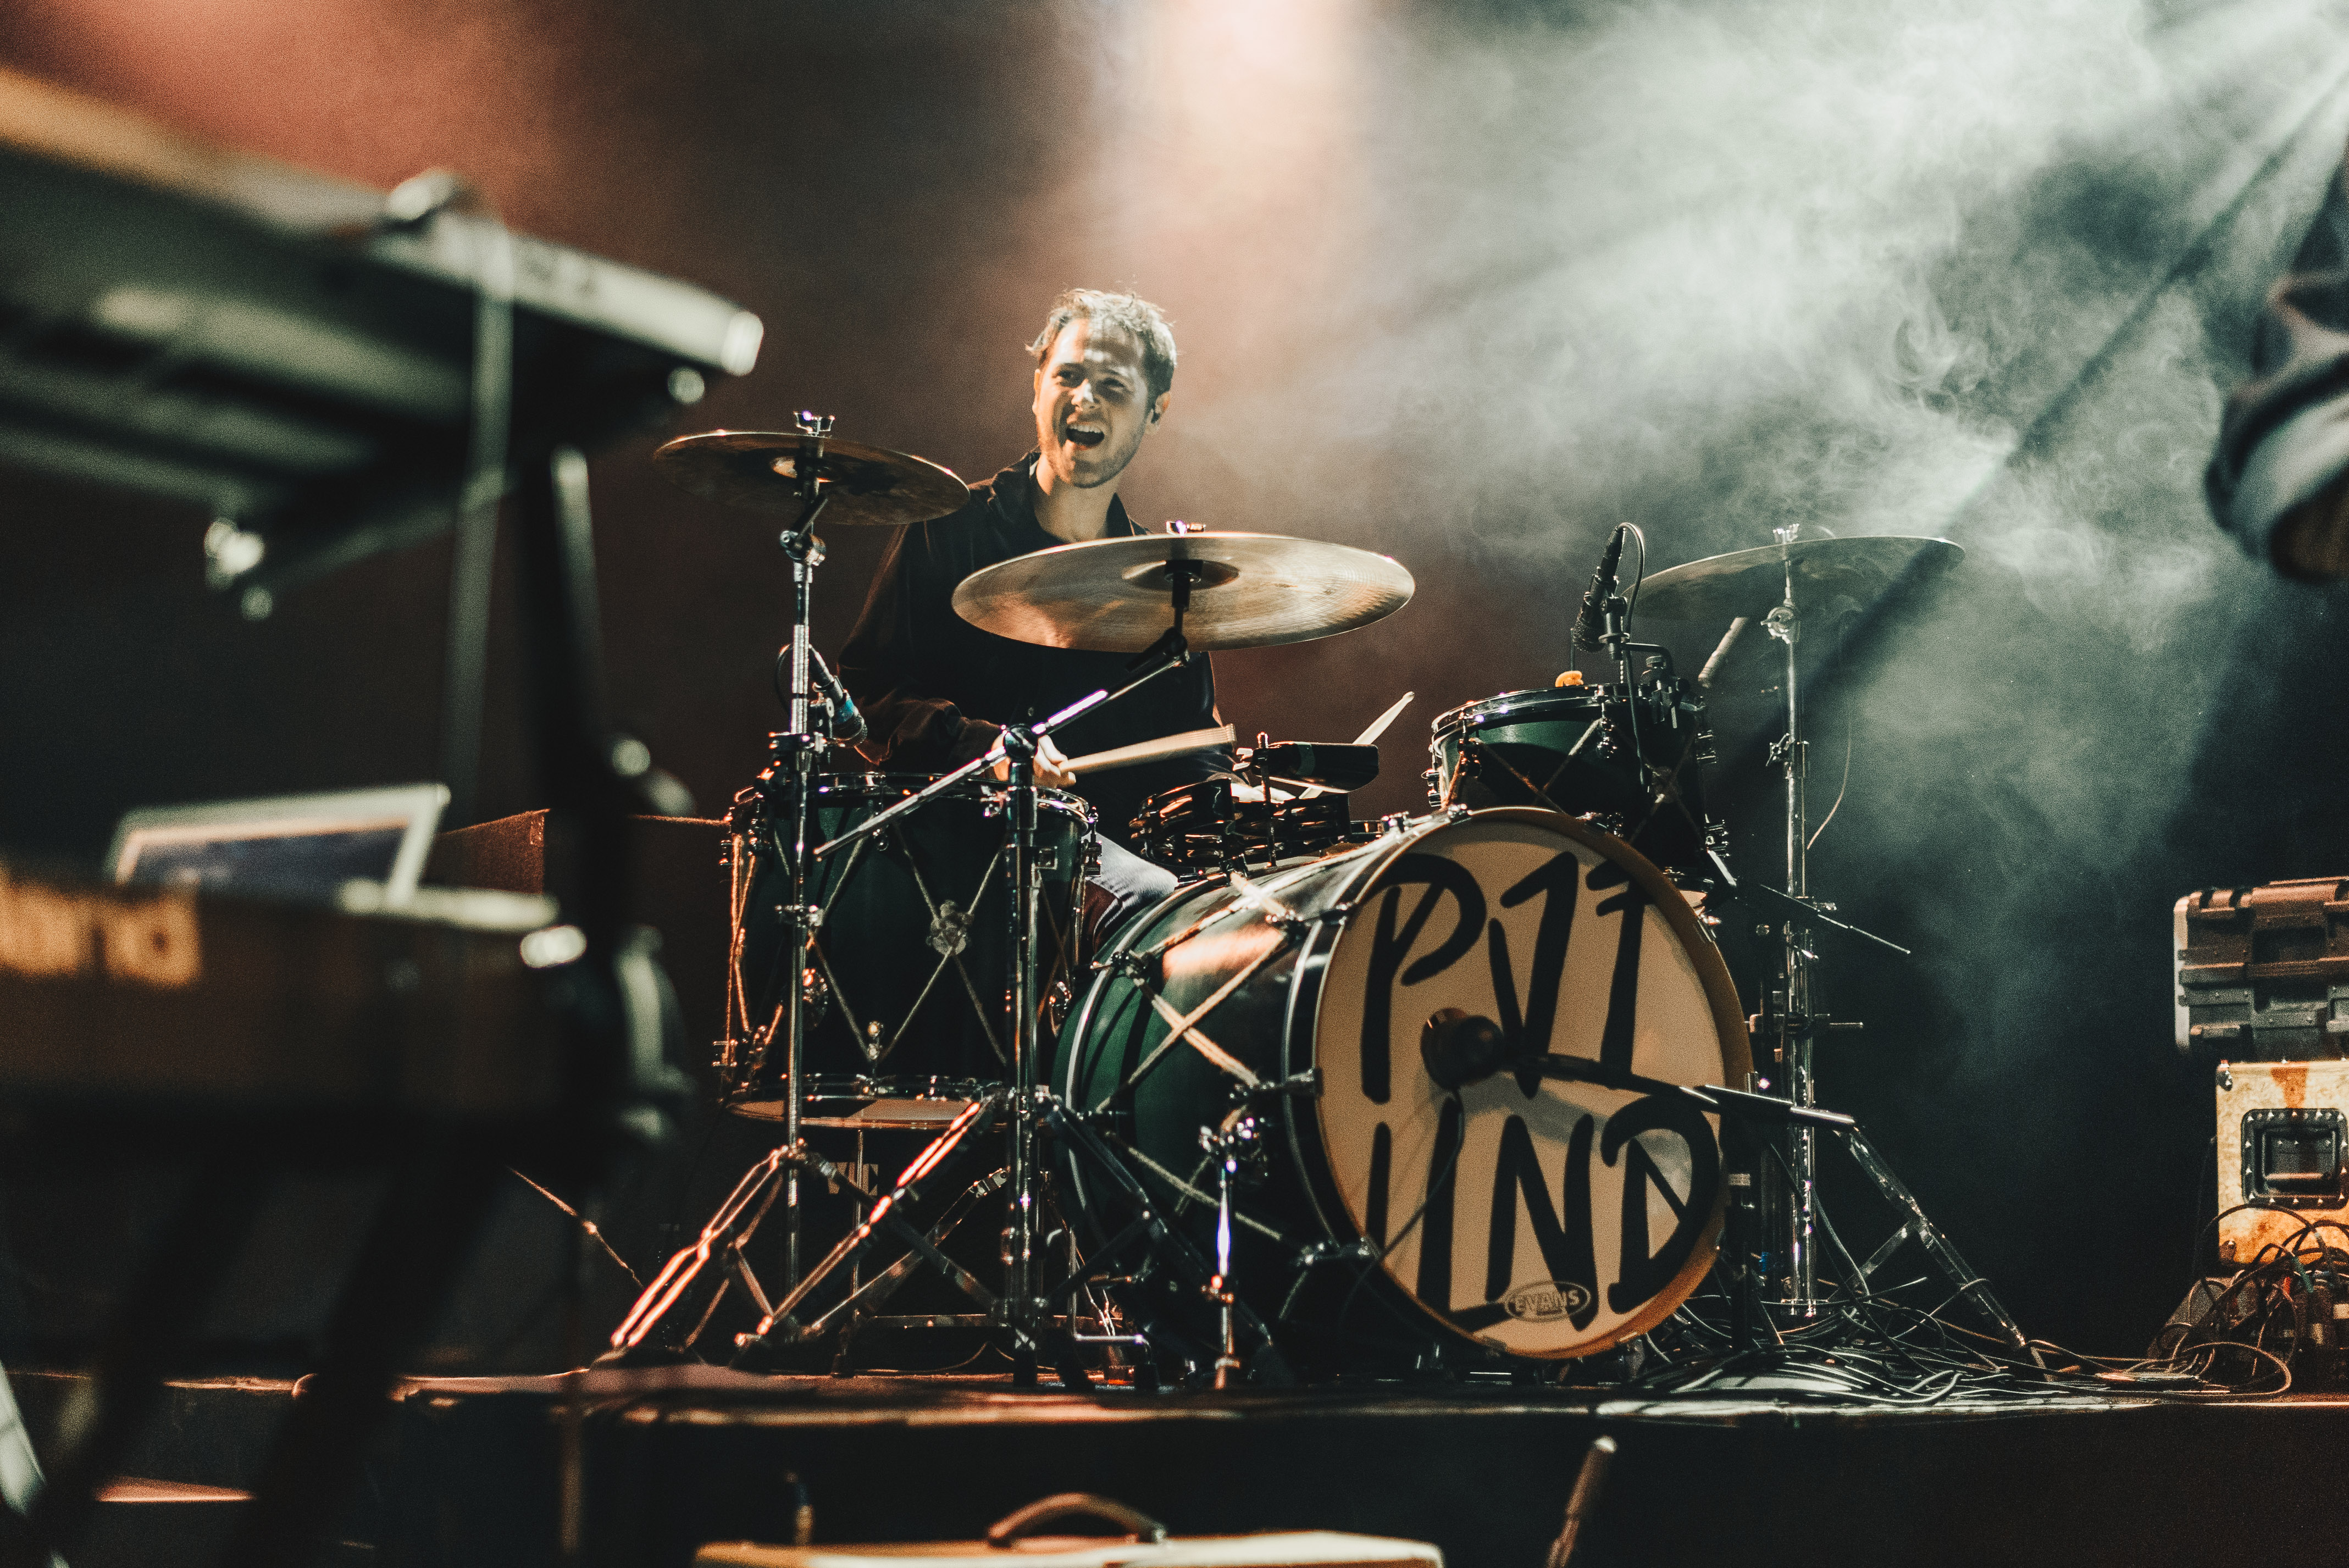 Photos: Private Island at The Roxy